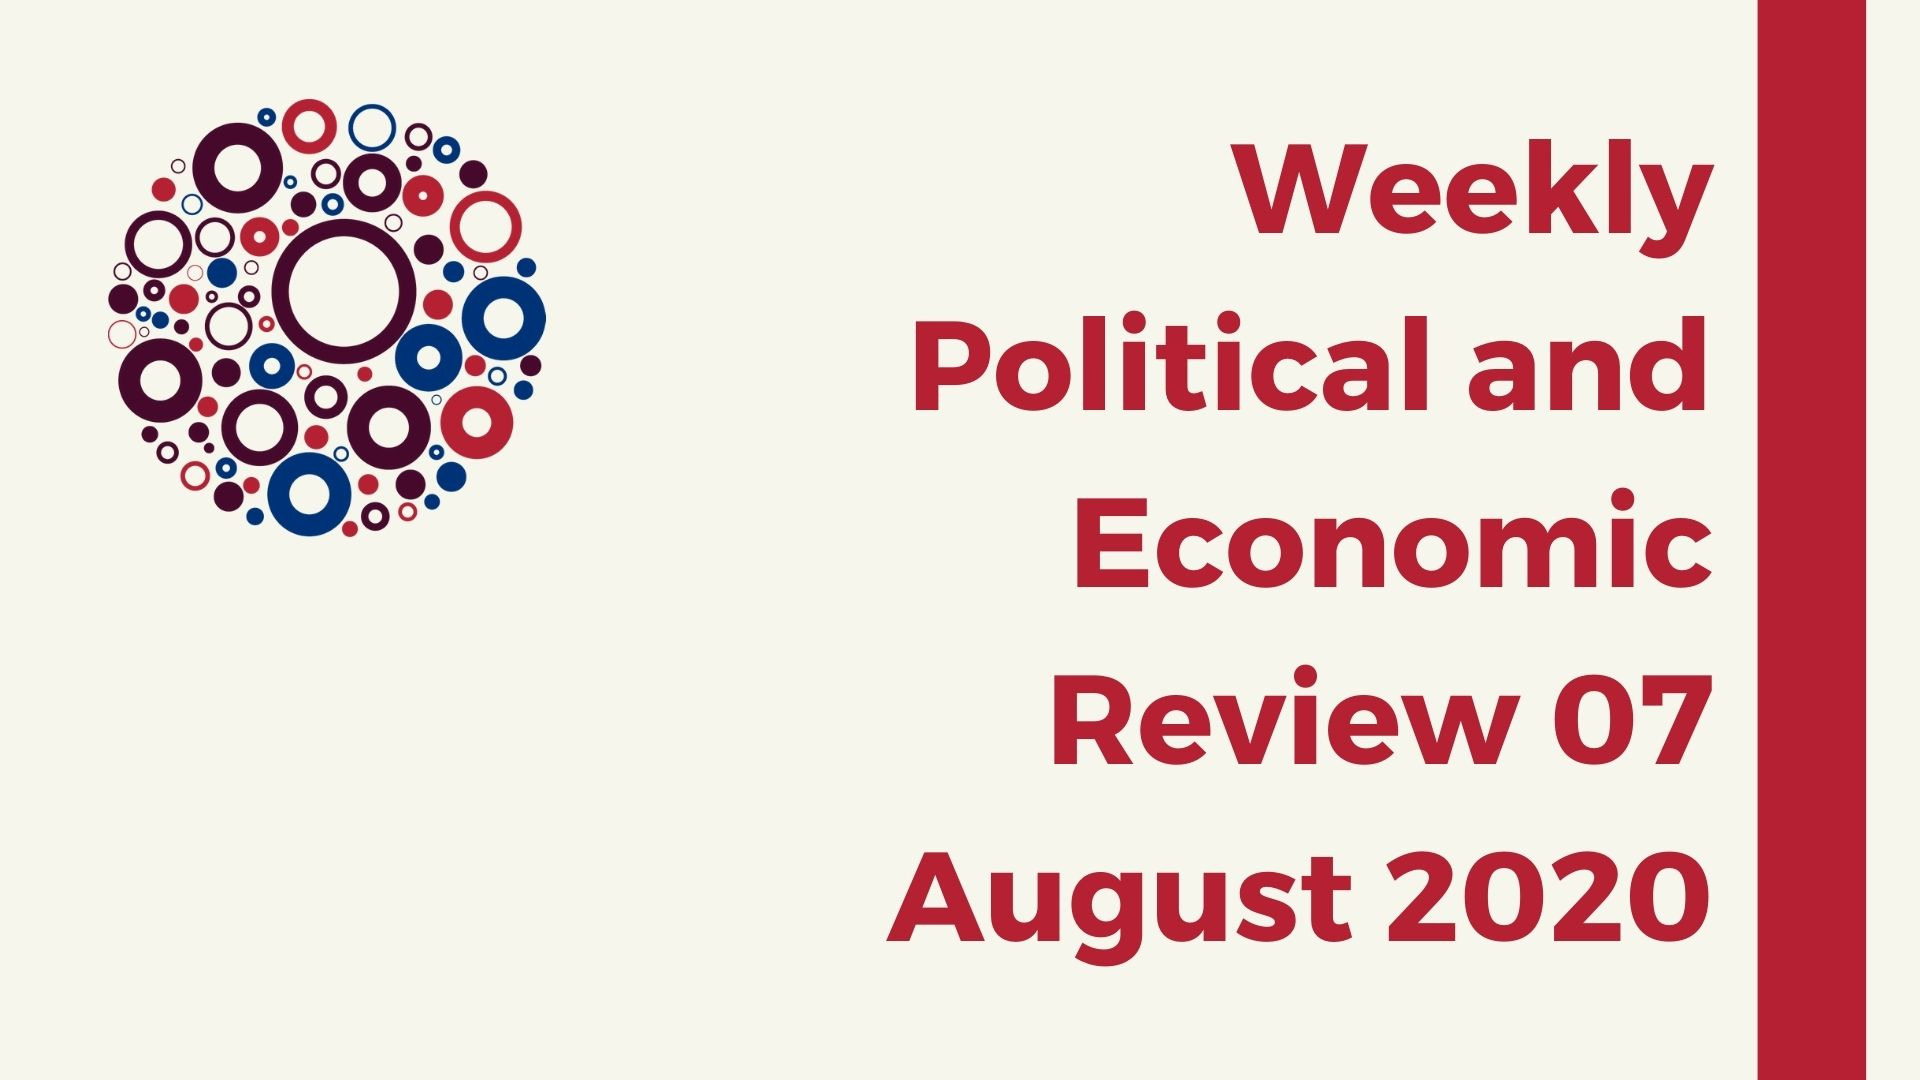 Weekly Political and Economic Review 07 August 2020